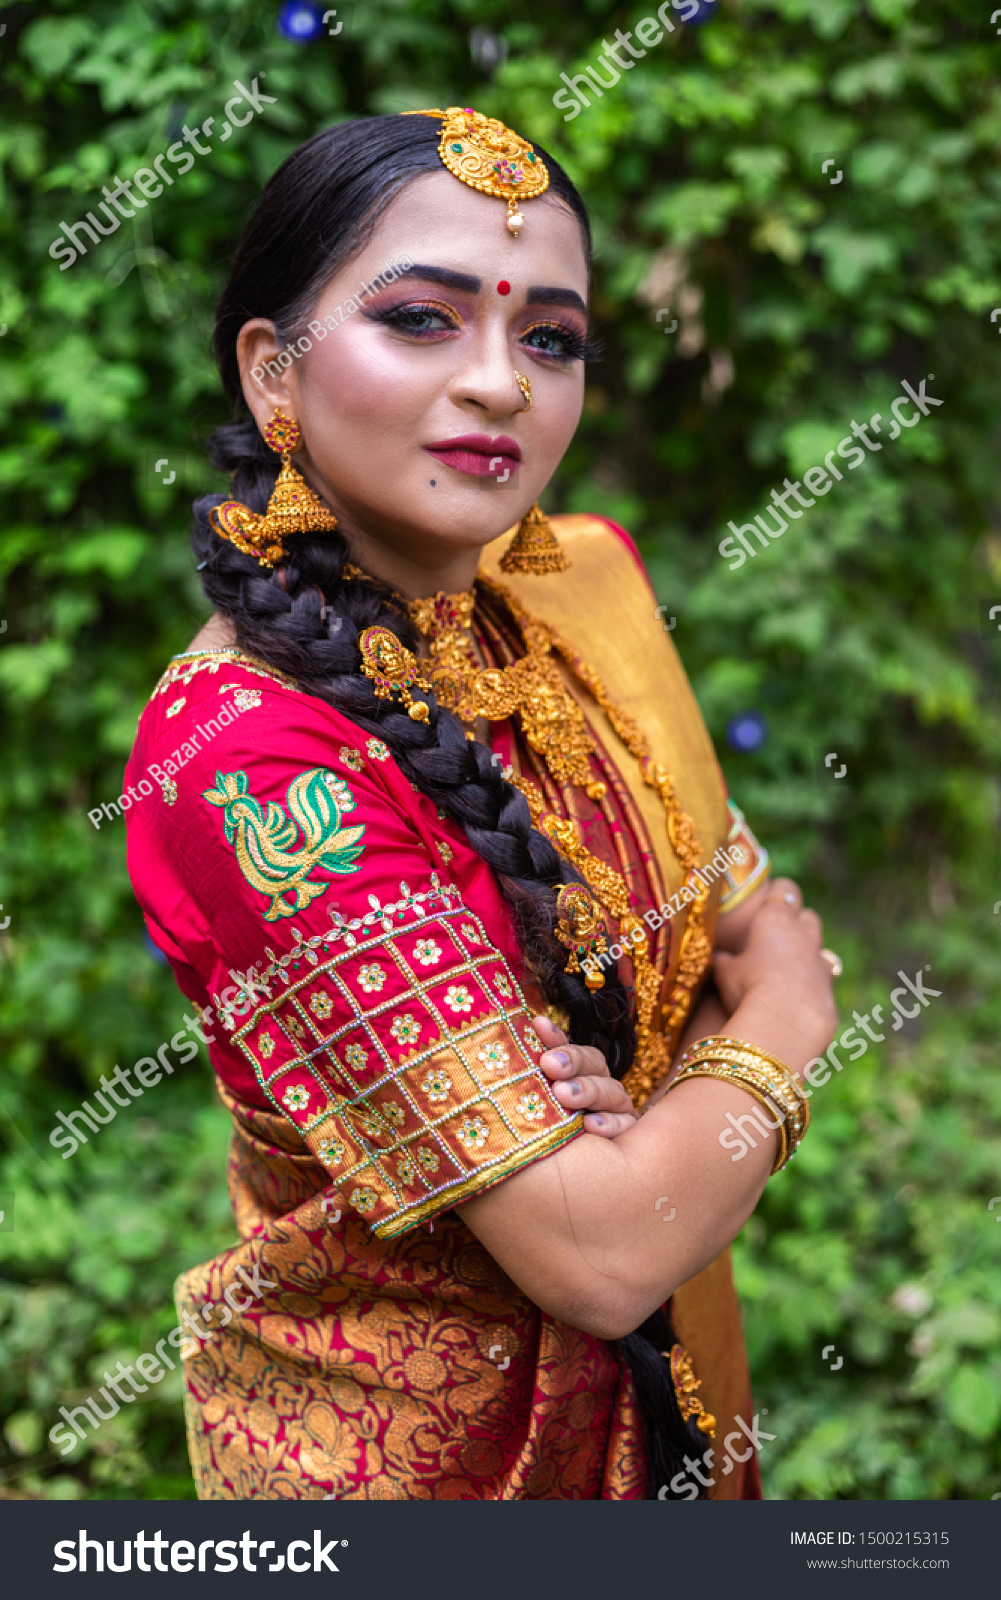 Traditional Young Indian Bride Wedding Dress Stock Photo Edit Now 1500215315,Wedding Dresses 500 And Under